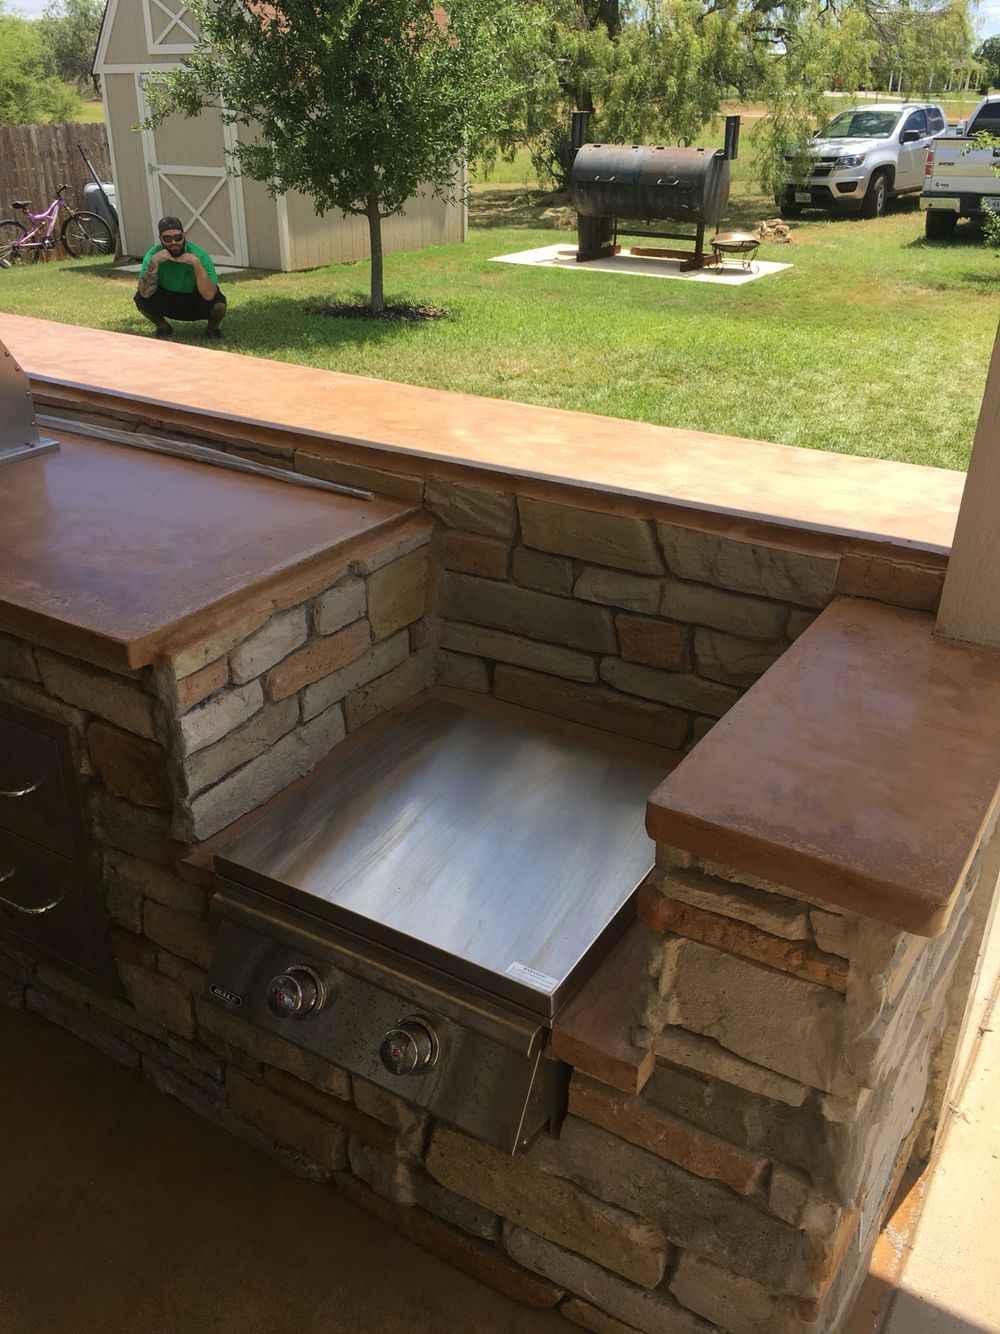 Power Burner For Crawfish Boils The Walls Are Made Of Concrete Www Clifrock Com Outdoor Kitchen Backyard Oasis Backyard